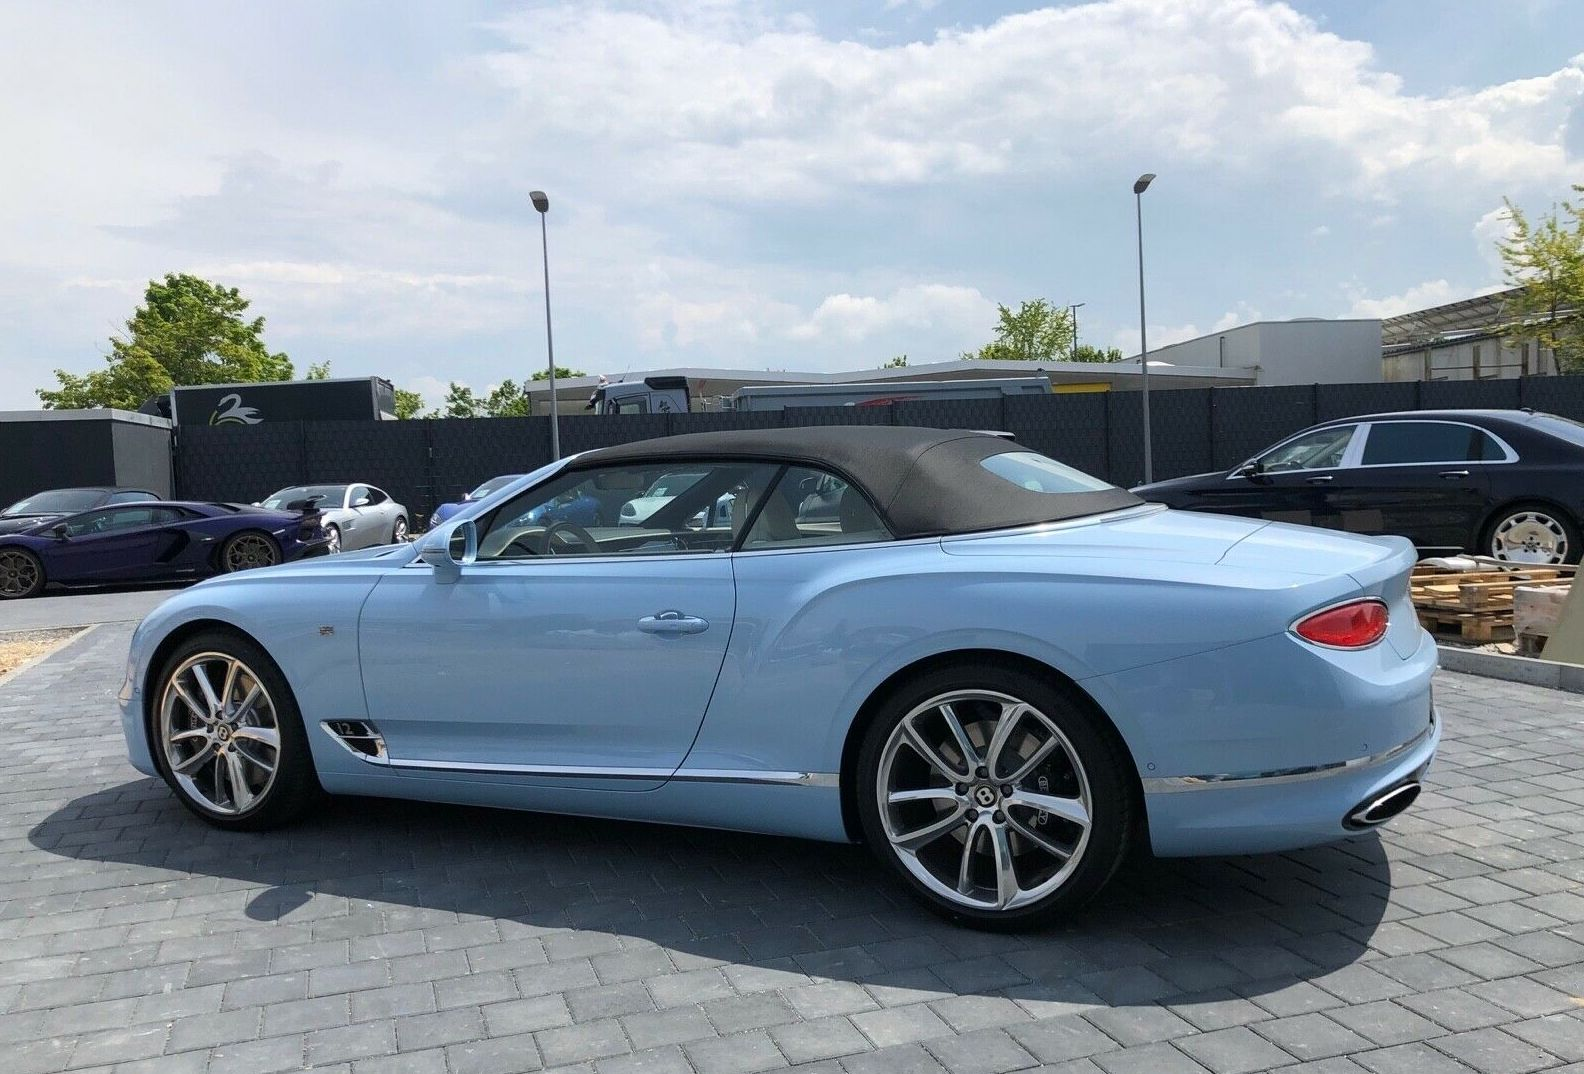 Bentley Continental Gtc W12 Luxury Pulse Cars Germany